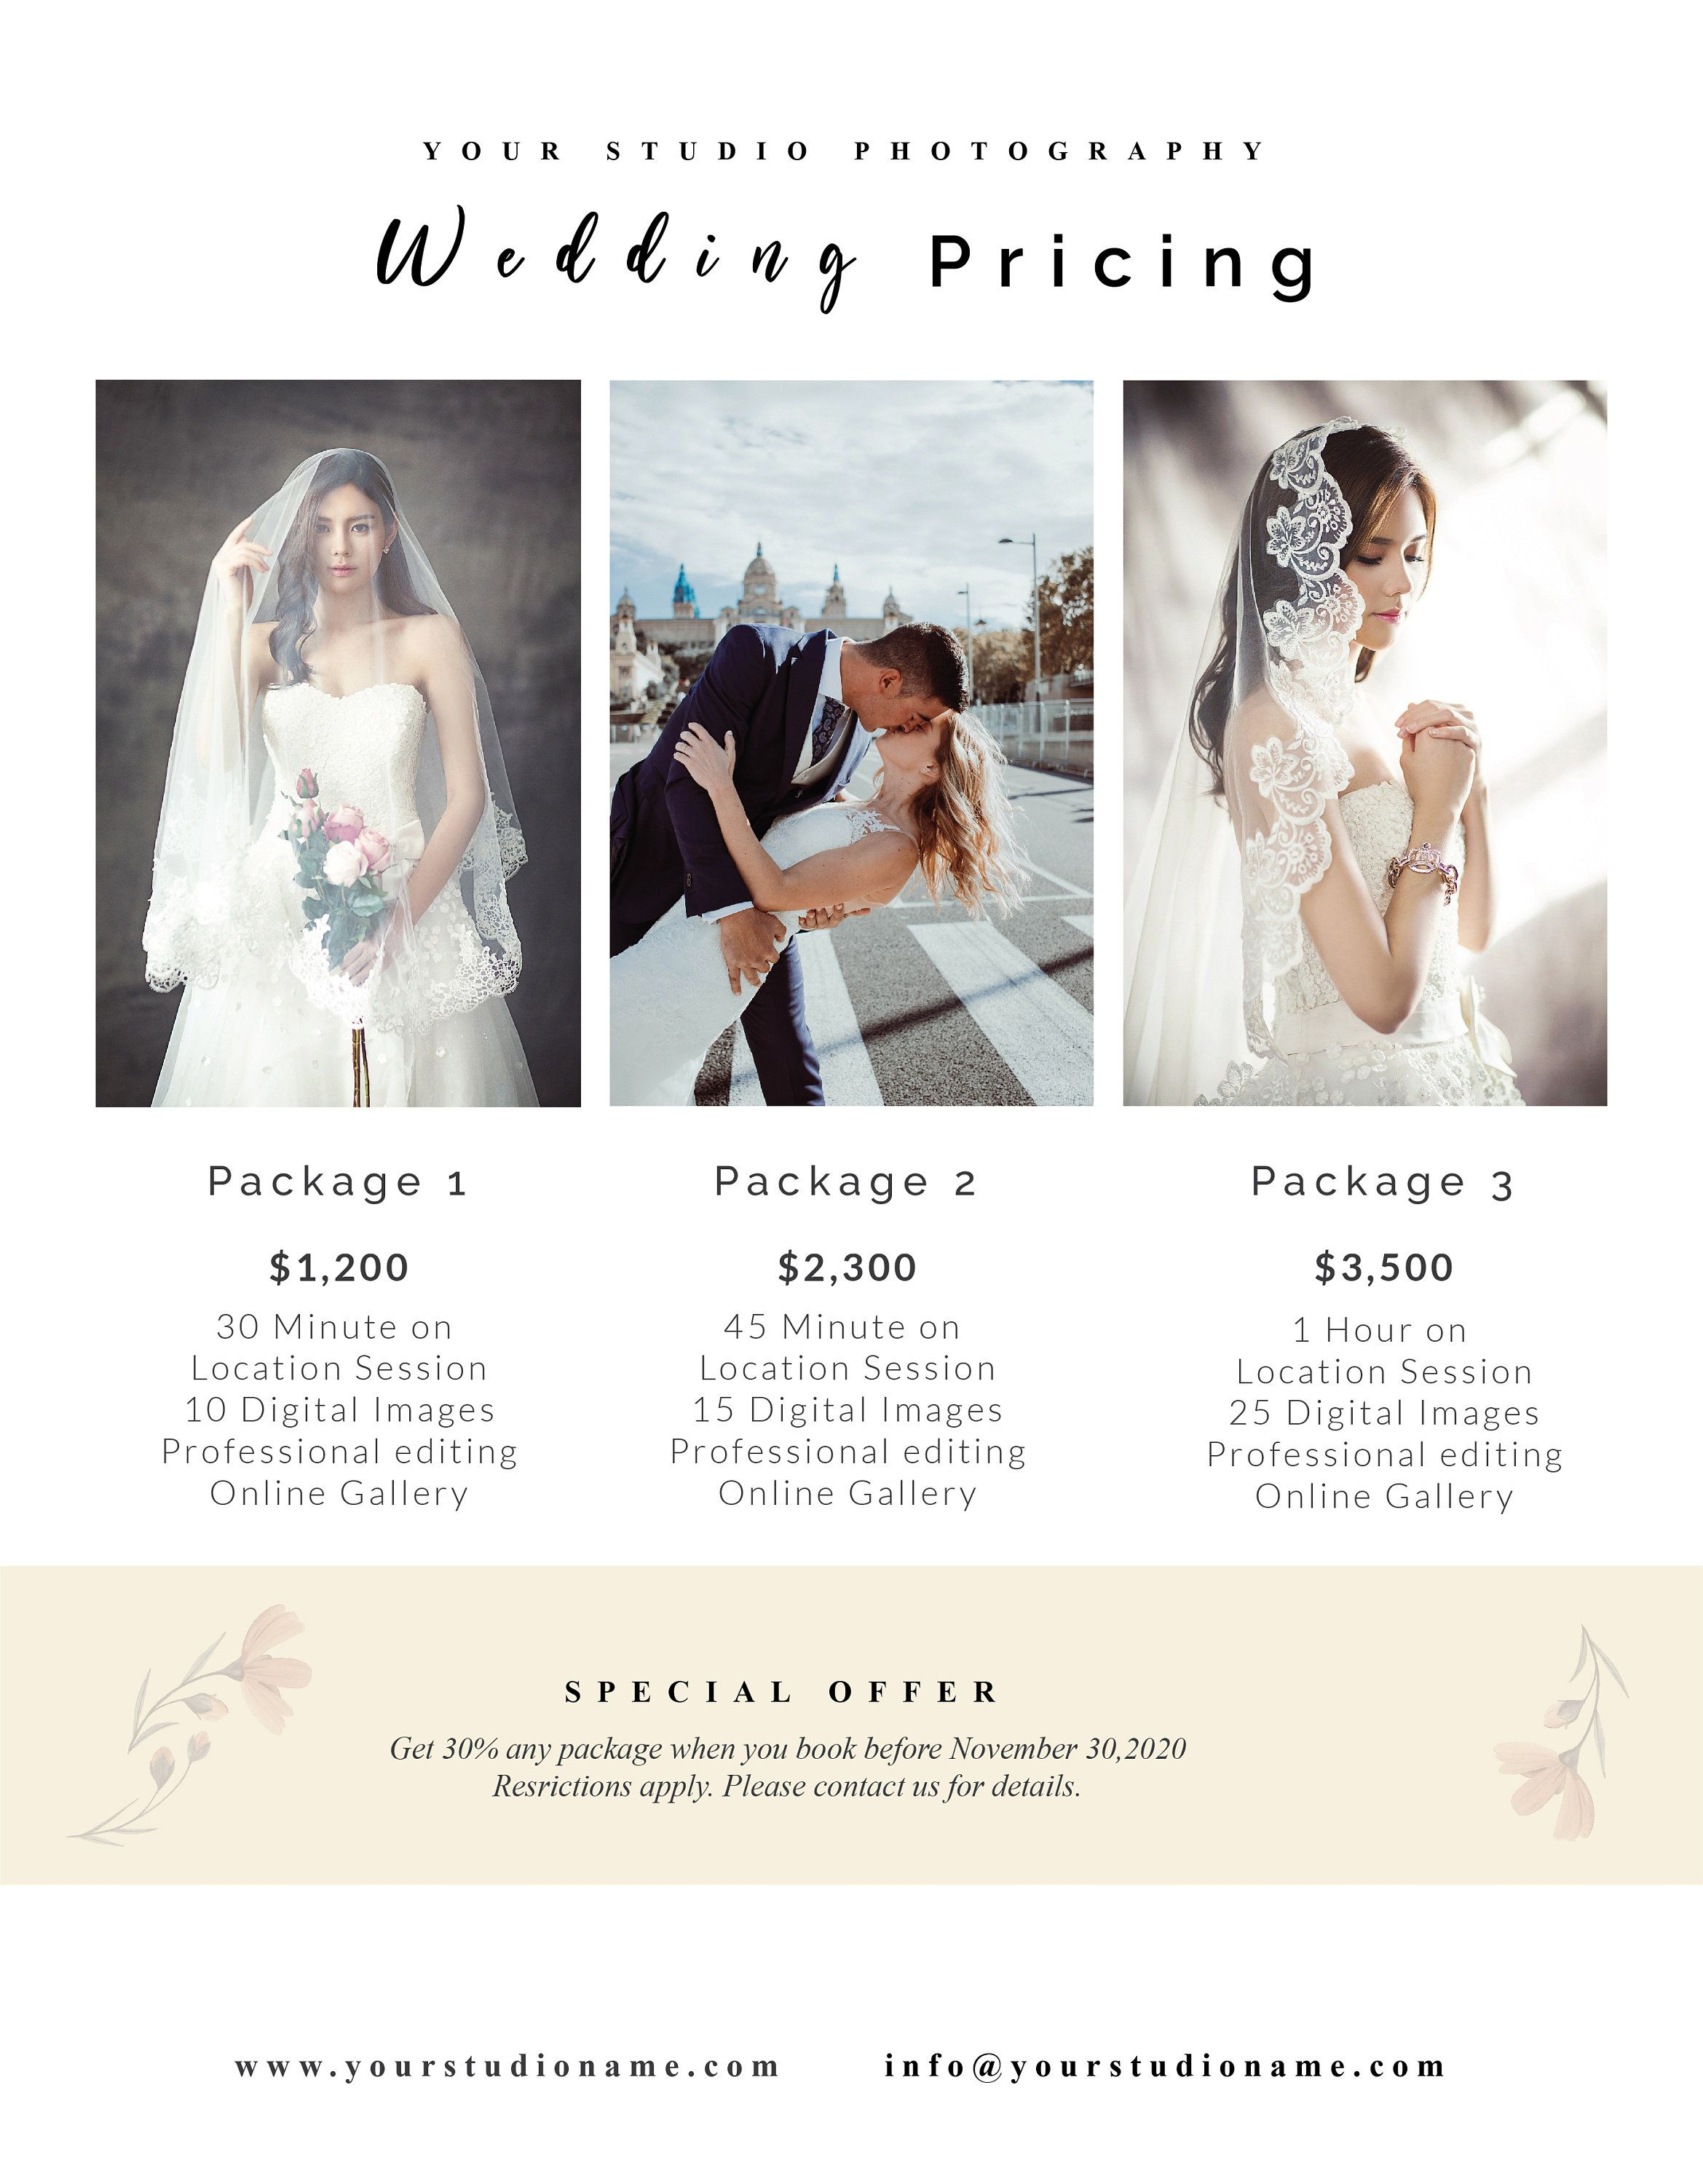 Anubis Wedding Package Prices Template In 2020 Wedding Photography Pricing Templates Wedding Photography Pricing Photography Pricing